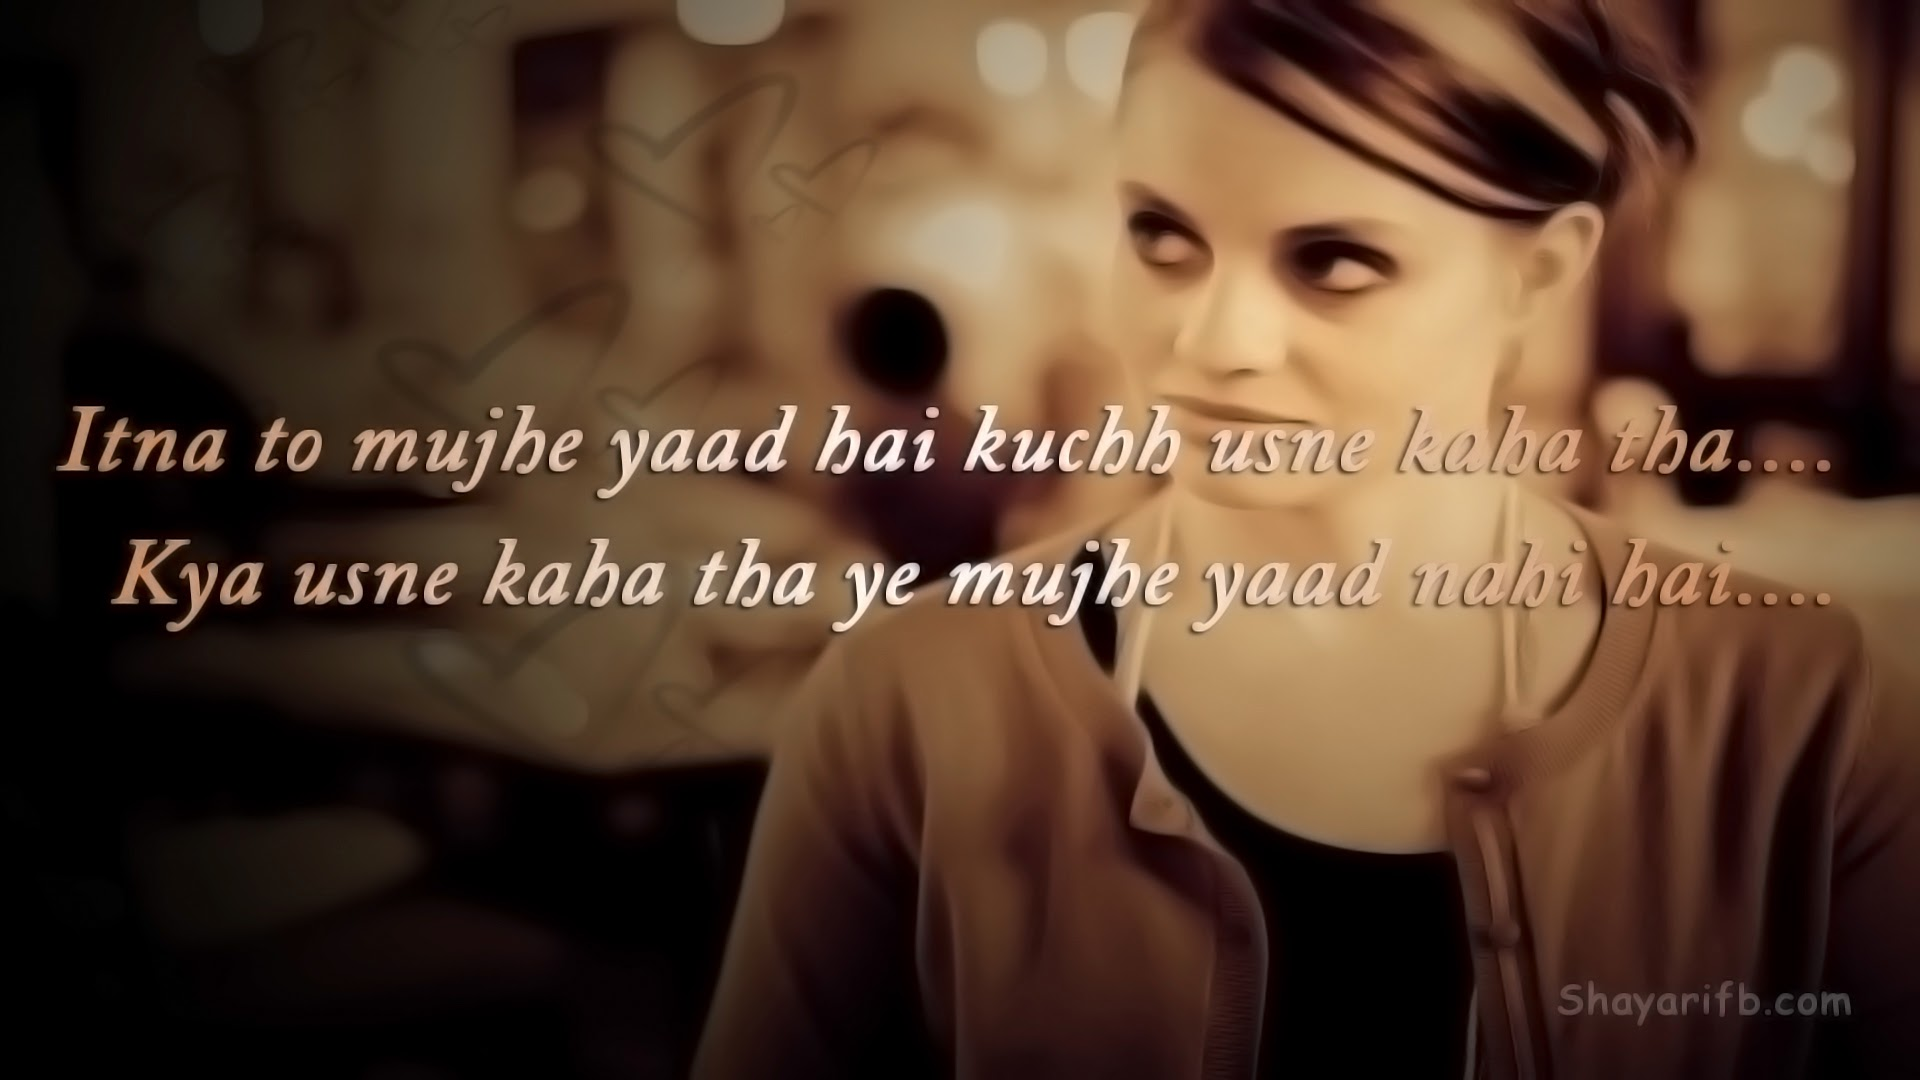 Love Wallpaper Hd Sayri : Sad Images Sad wallpapers Sad Shayari : February 2015